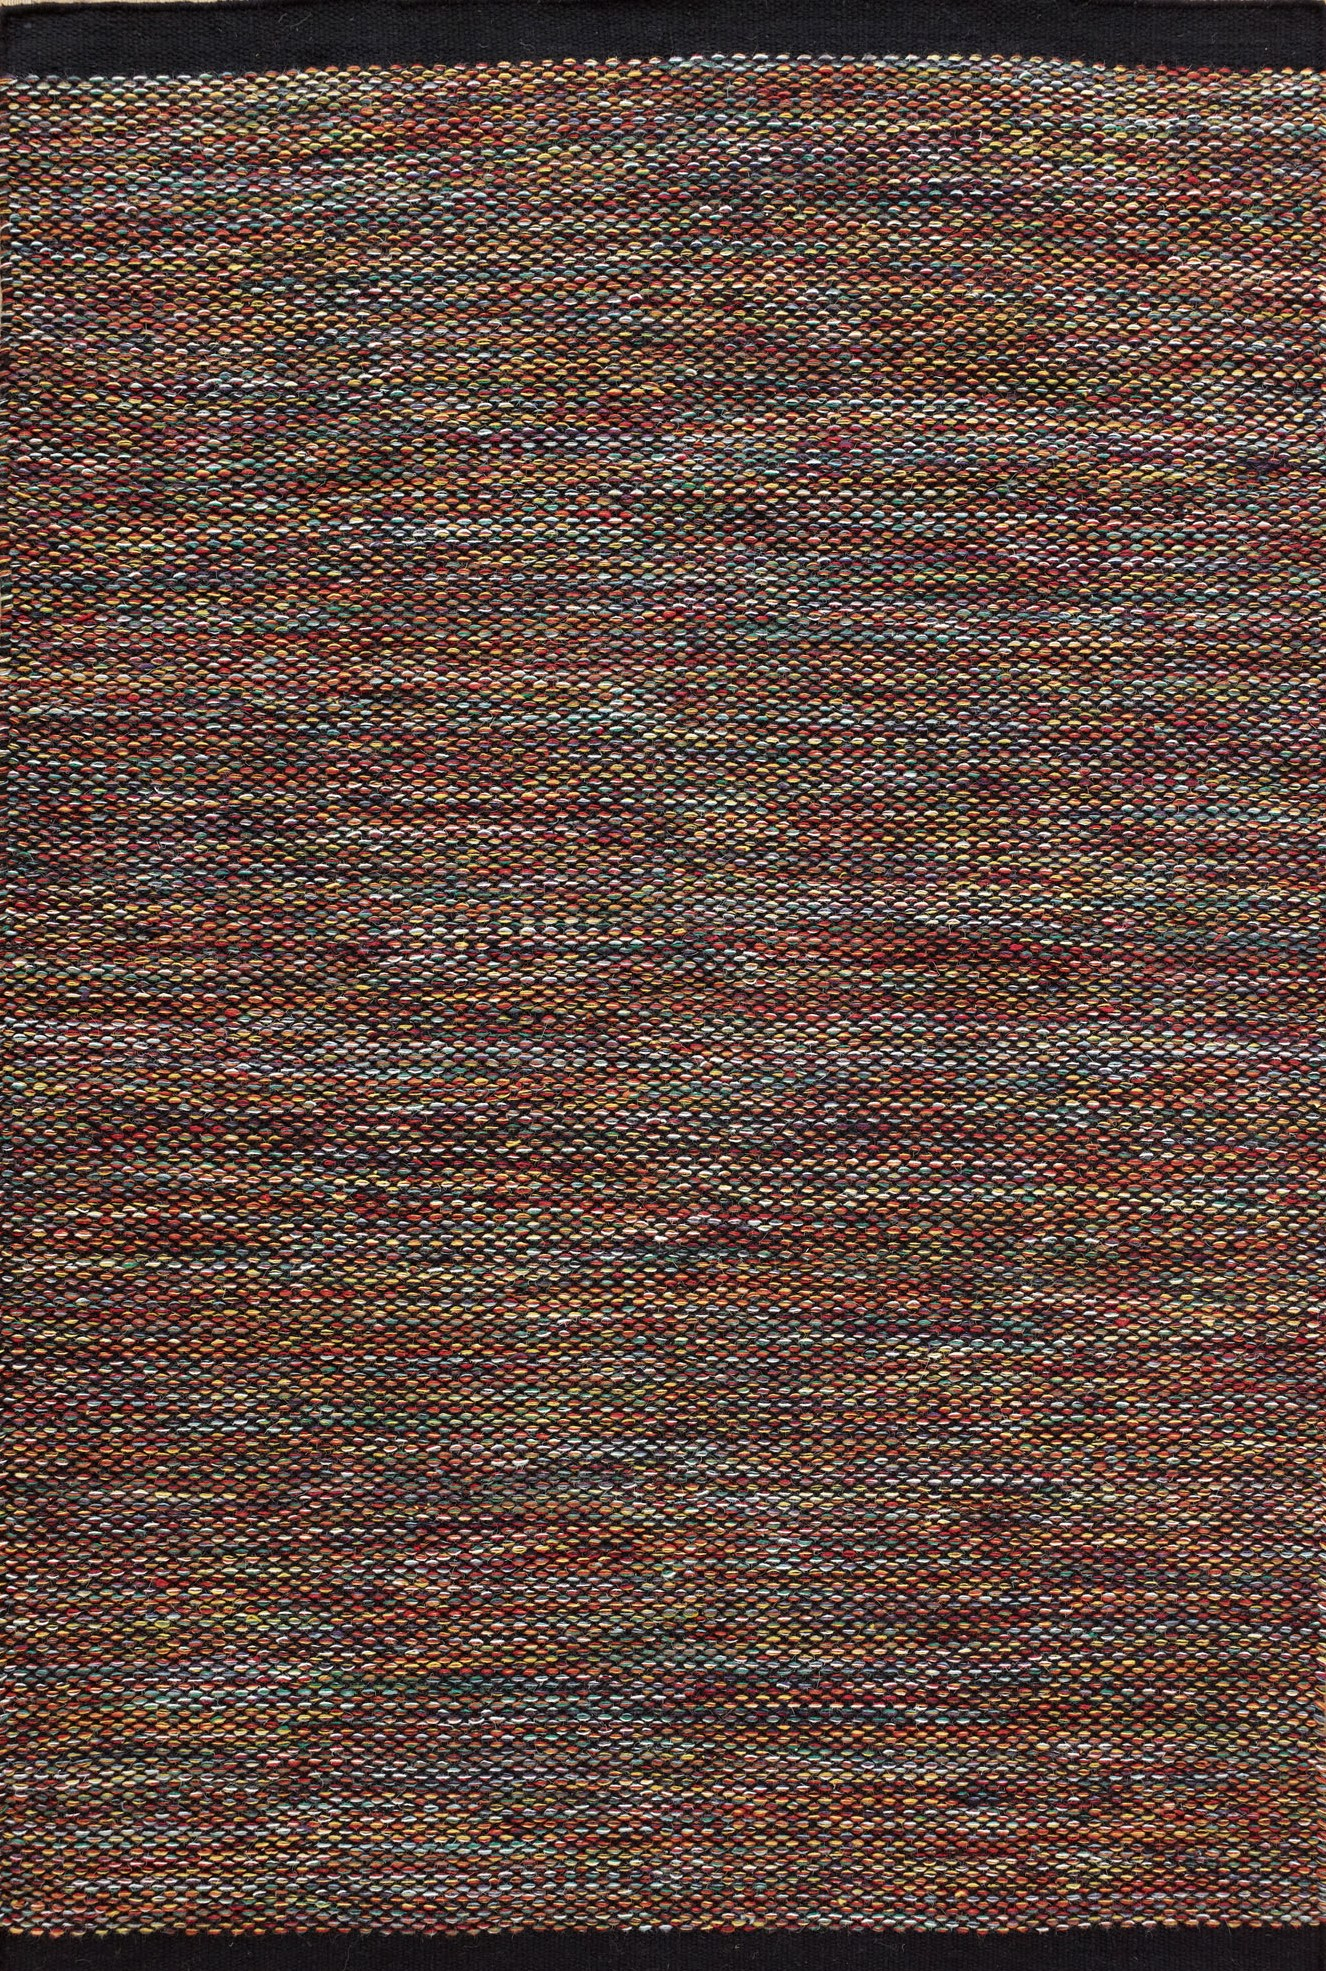 Rep Hand-Woven Flatweave Rug (Colour: Multi-Coloured, Rug Size: 160 x 230)